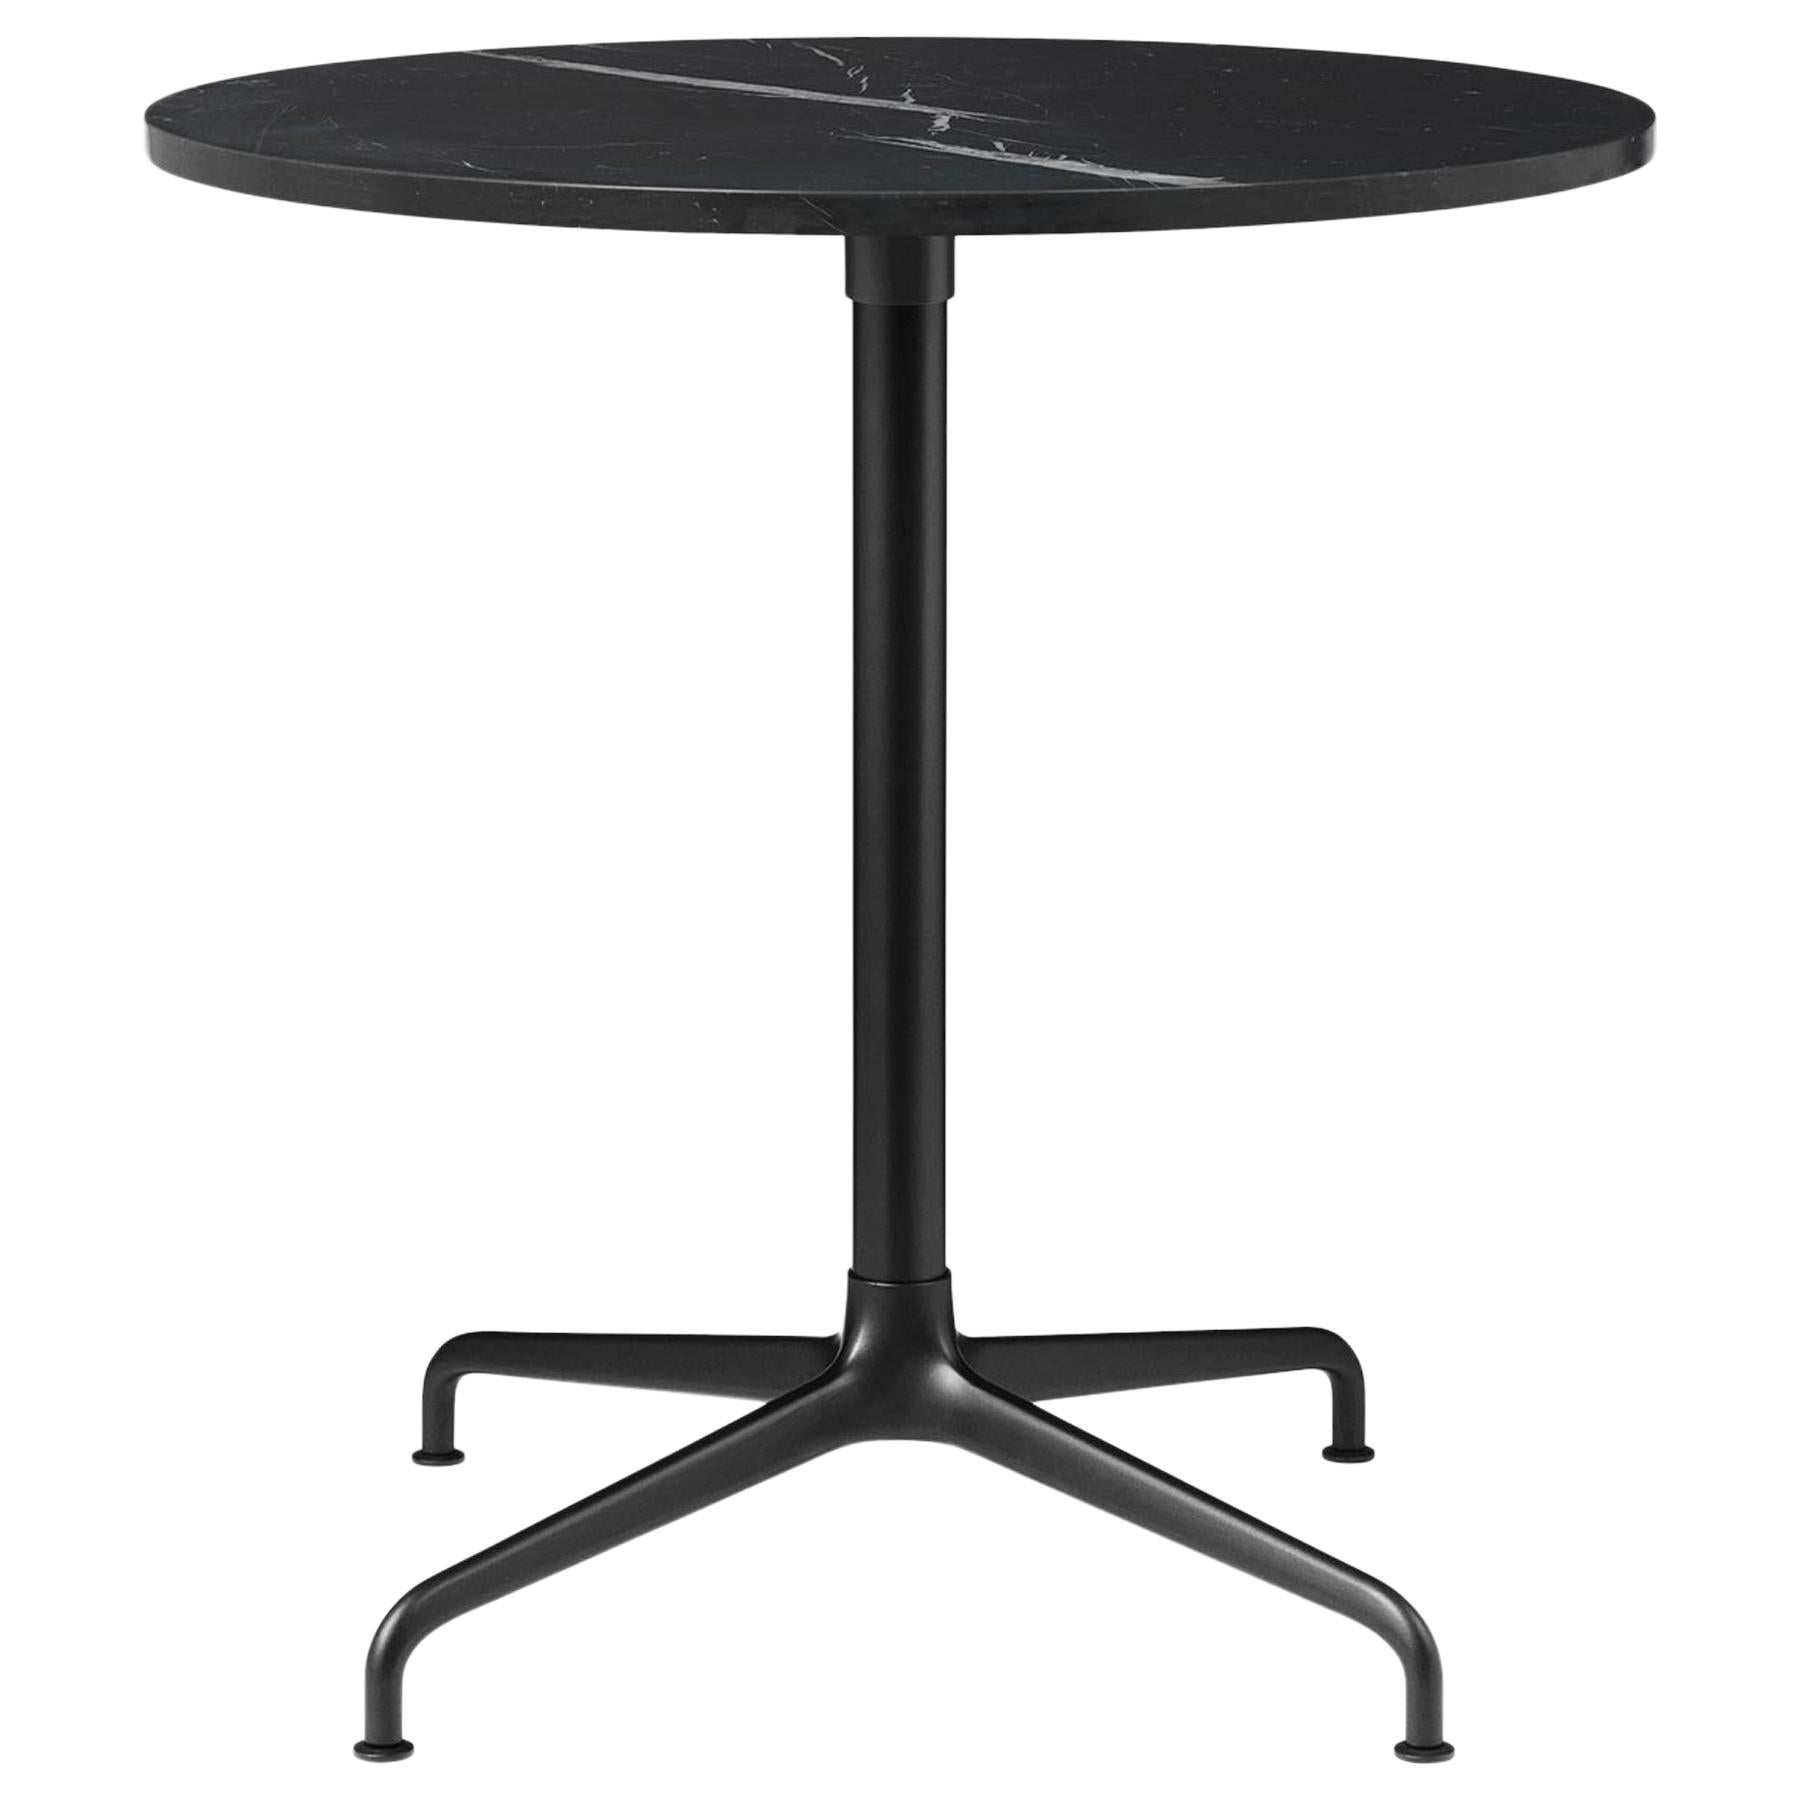 Beetle Dining Chair, Round, 4-Star Base, Large, Marble